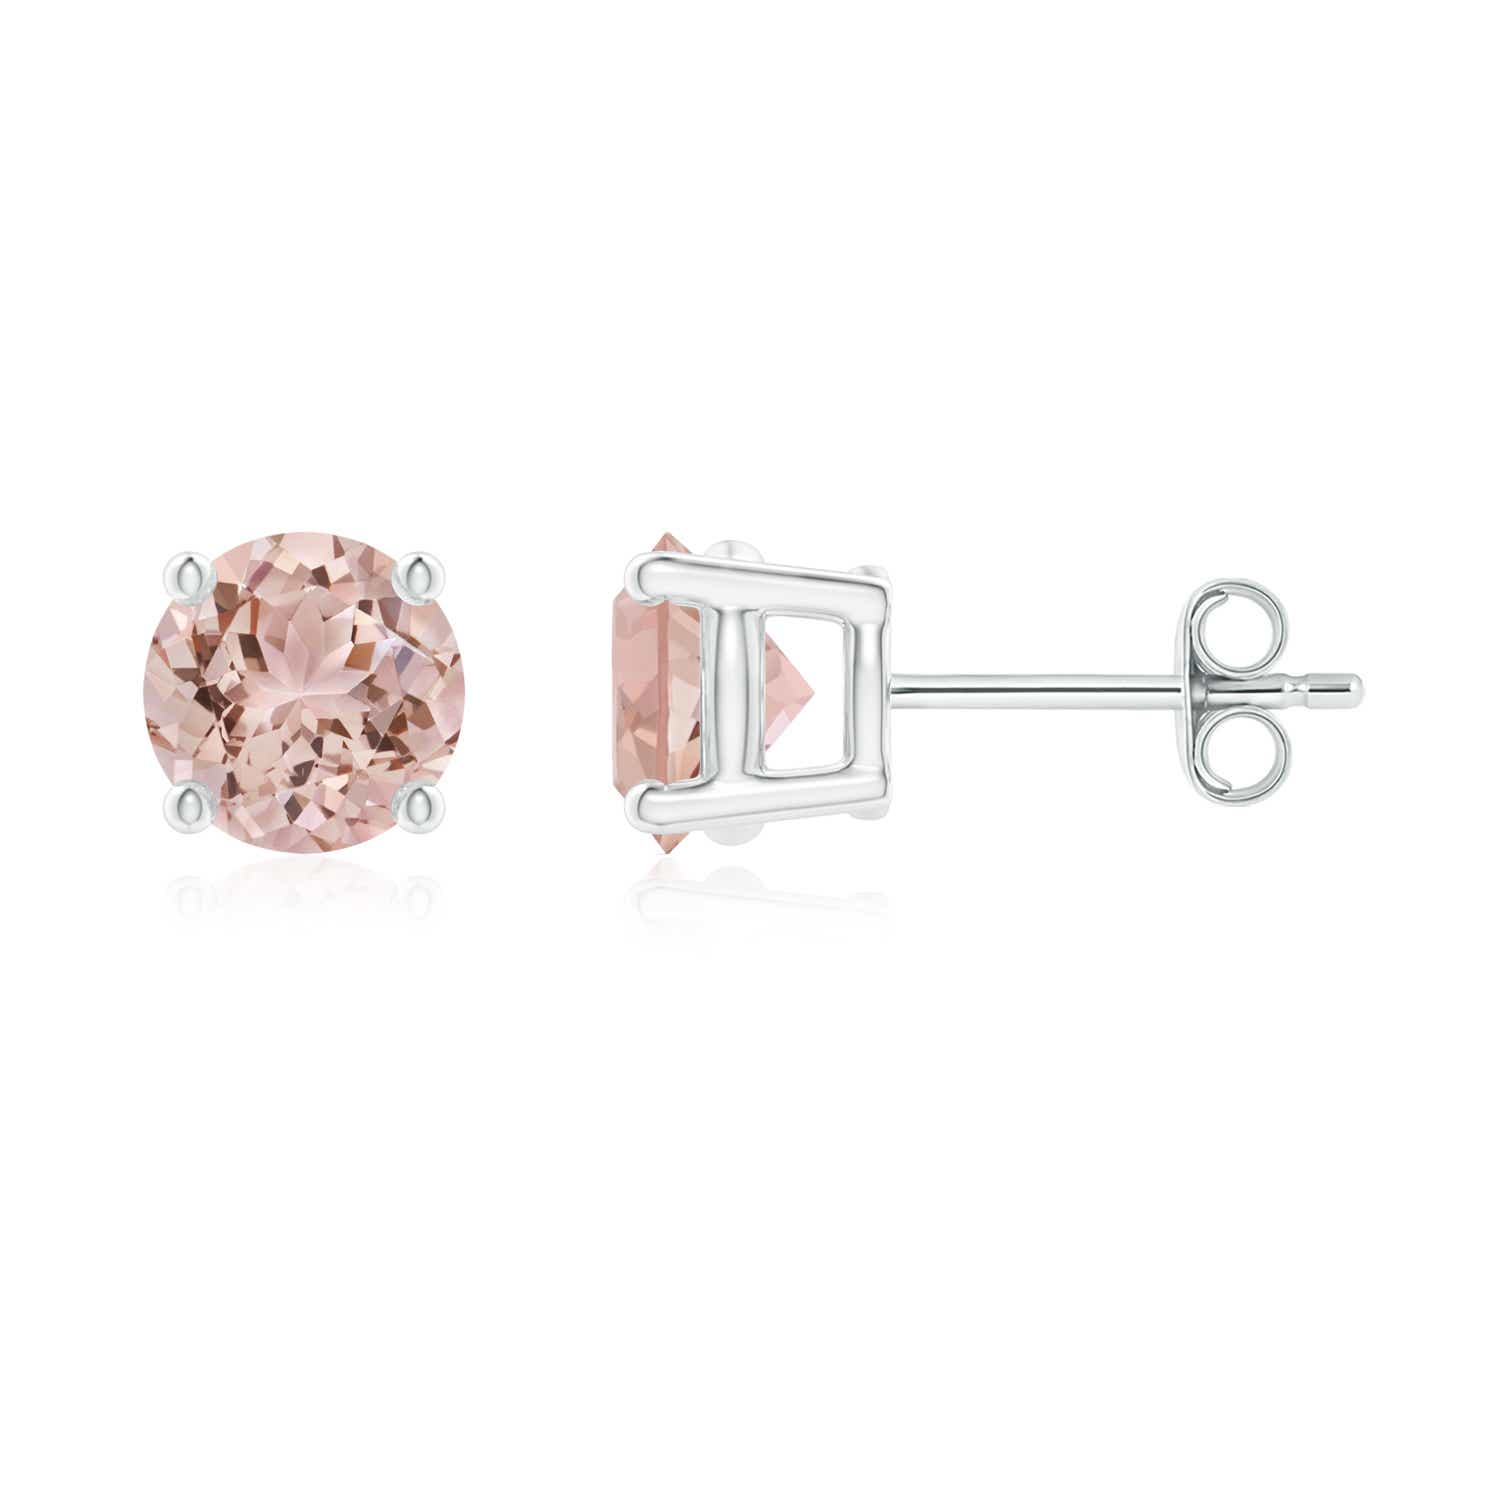 stud carats com progressive products heart earrings rose morganite ice gold shape